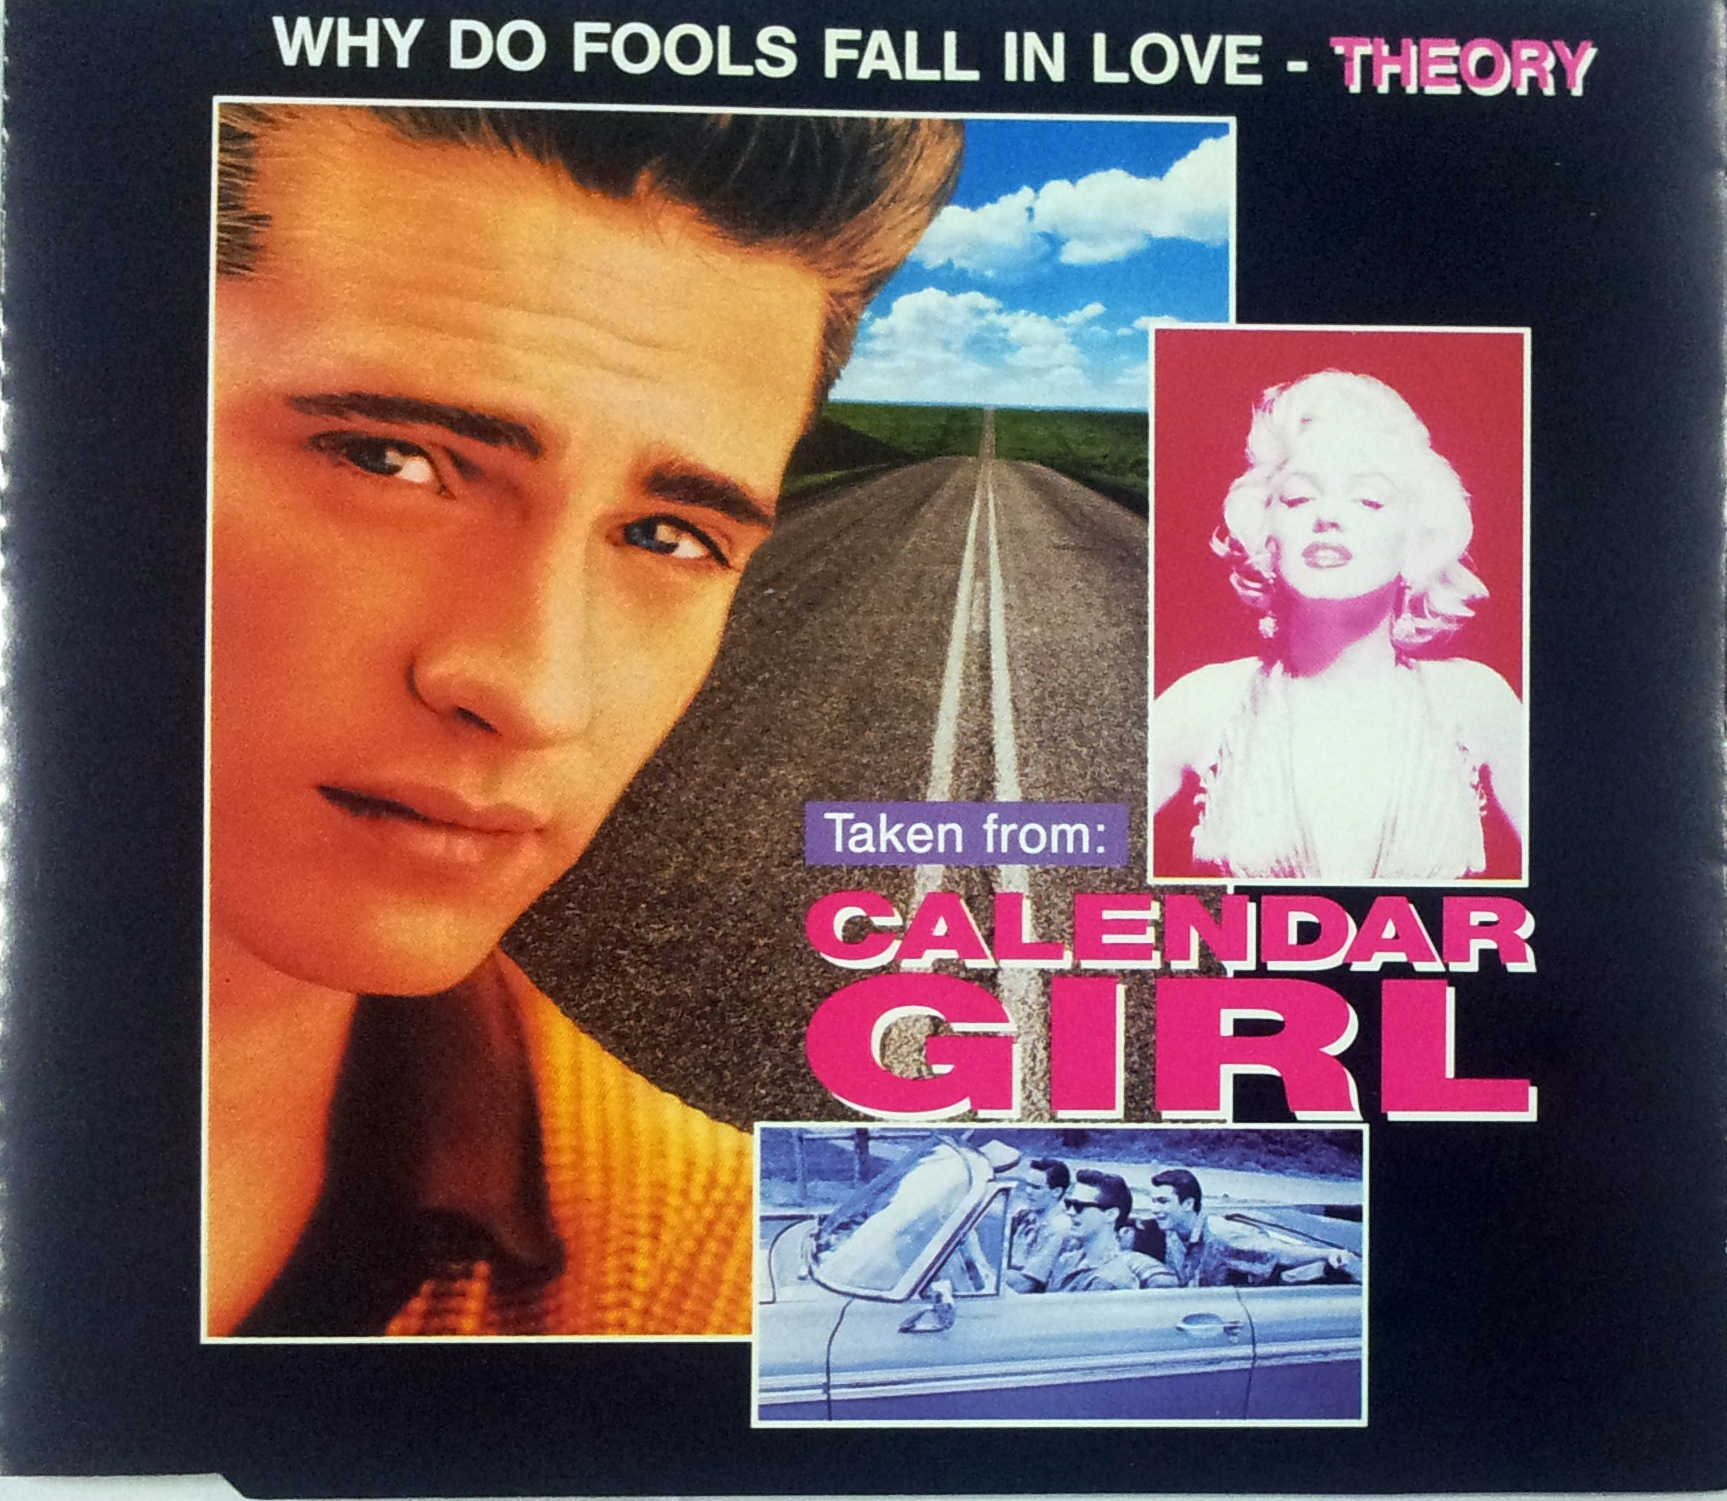 Why do fools fall in love (From soundtrack calendar girl)